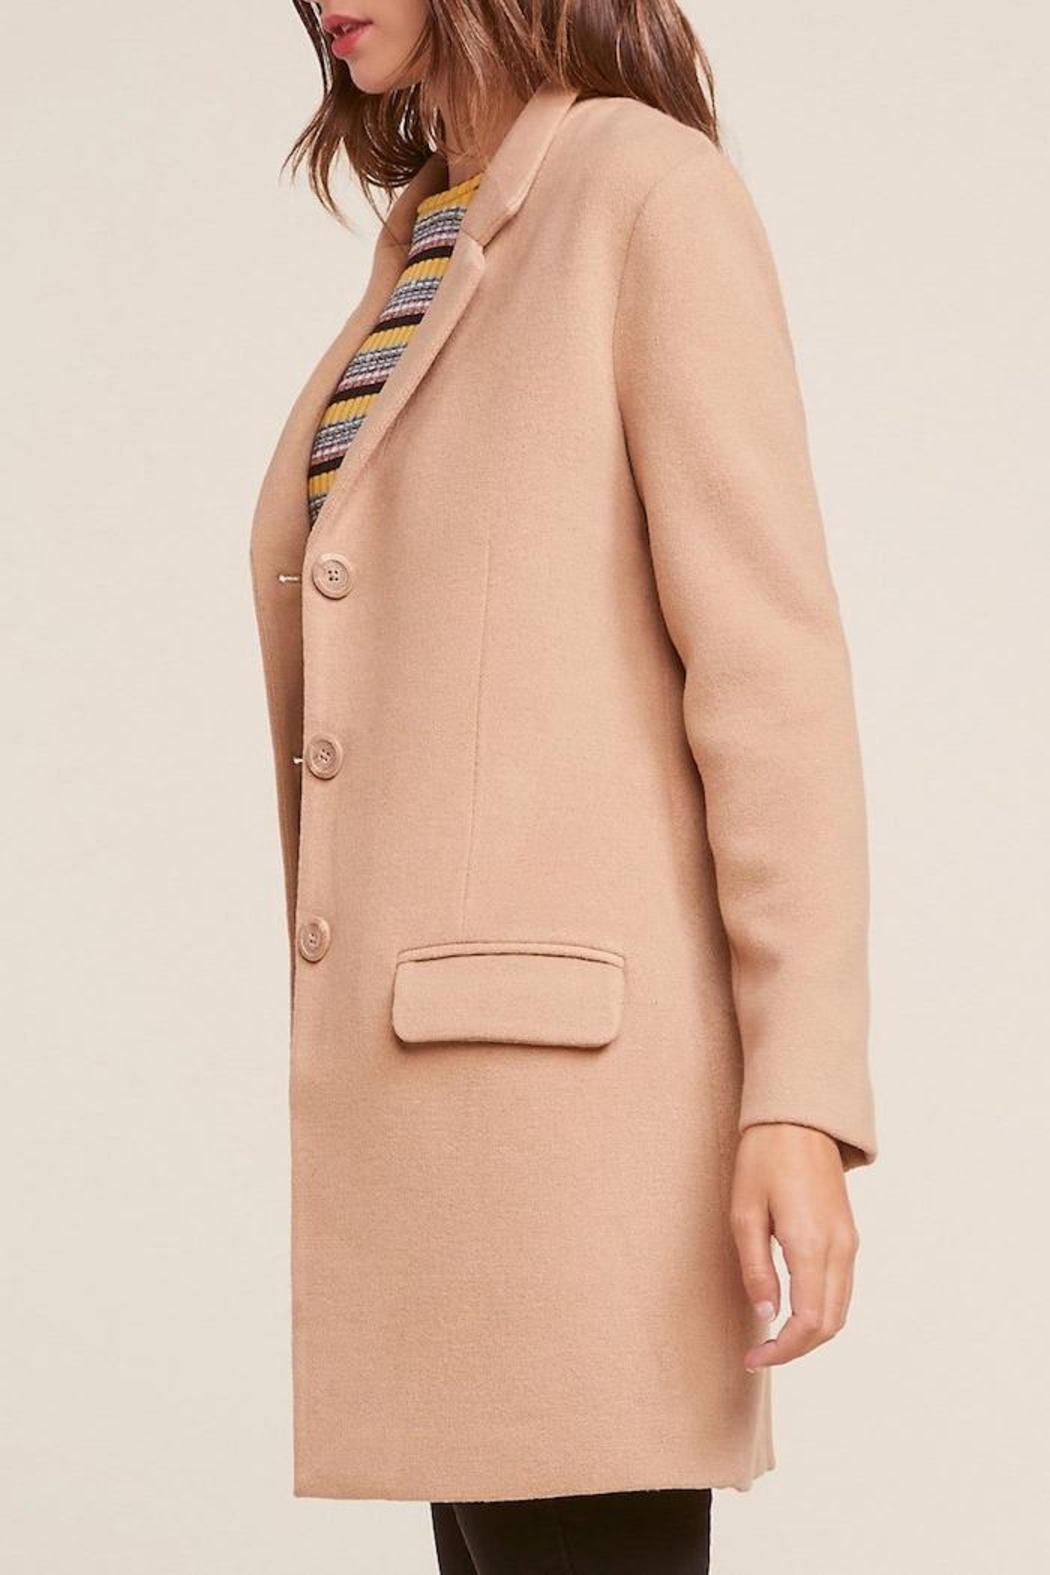 BB Dakota Twill Camel Coat - Front Full Image